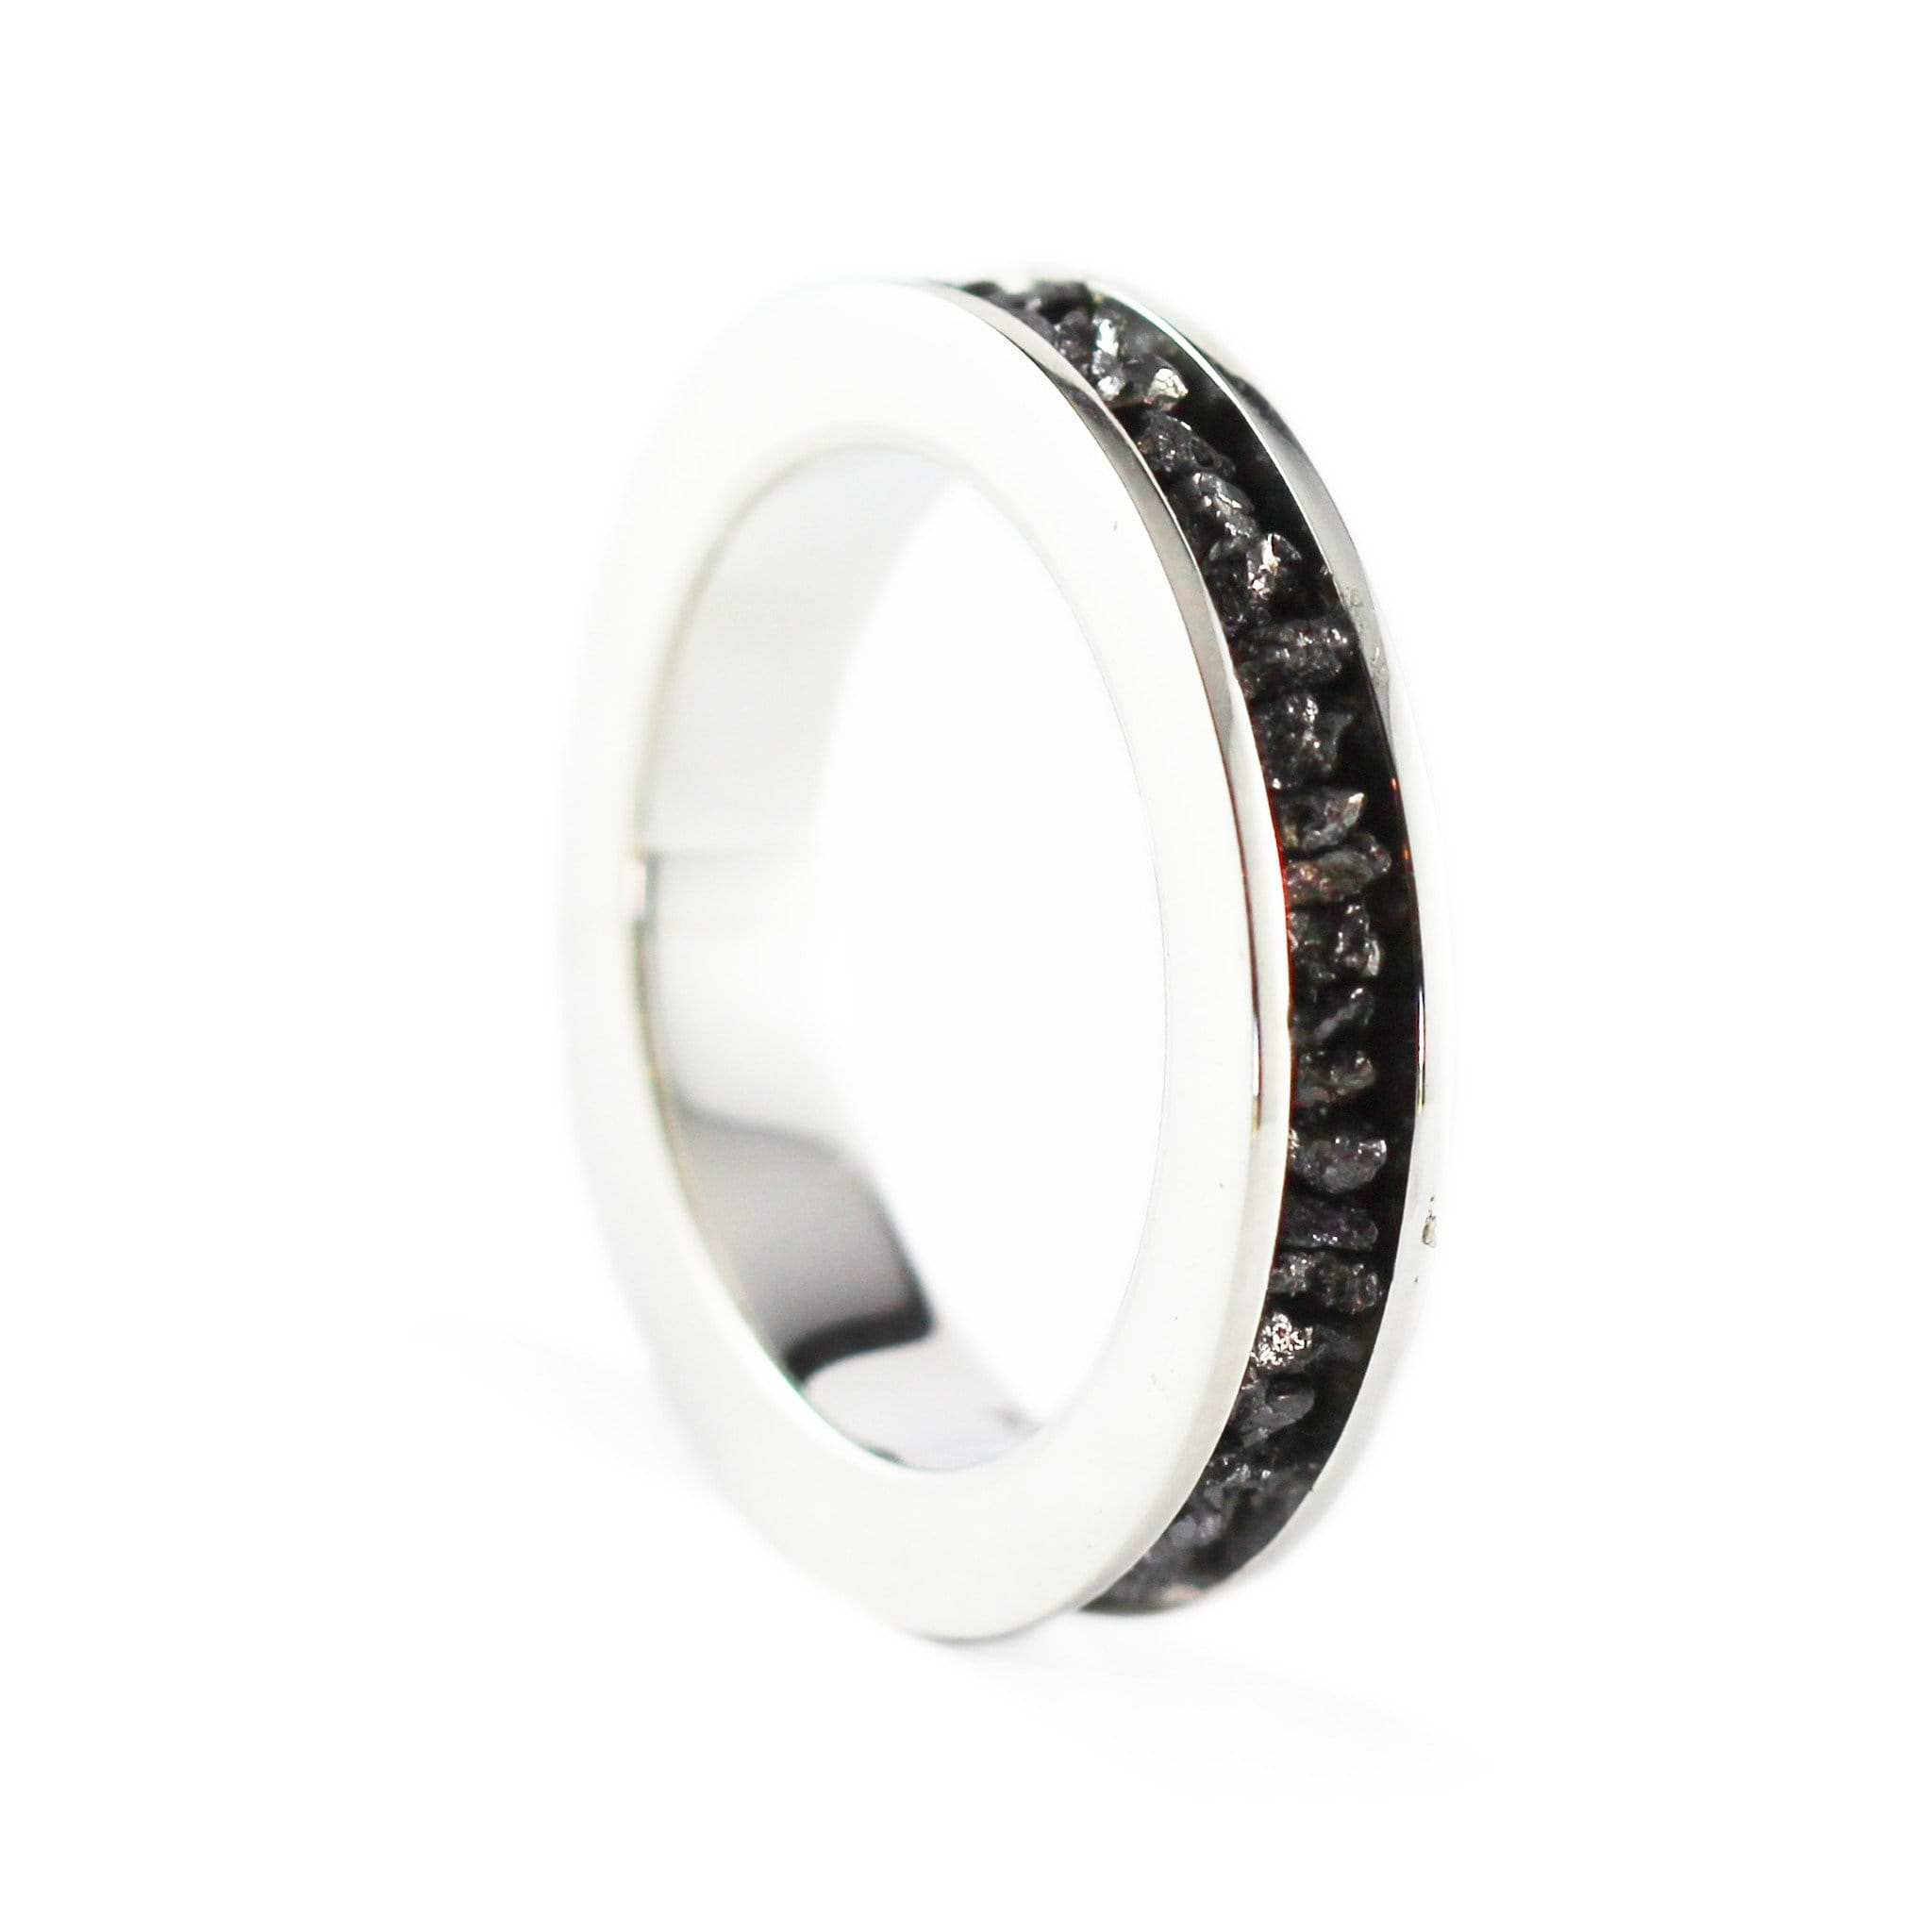 bands ring s wedding shipping black over in sterling tdw men jewelry band product today set channel watches diamond collection silver free overstock mens tcw isabella platinum